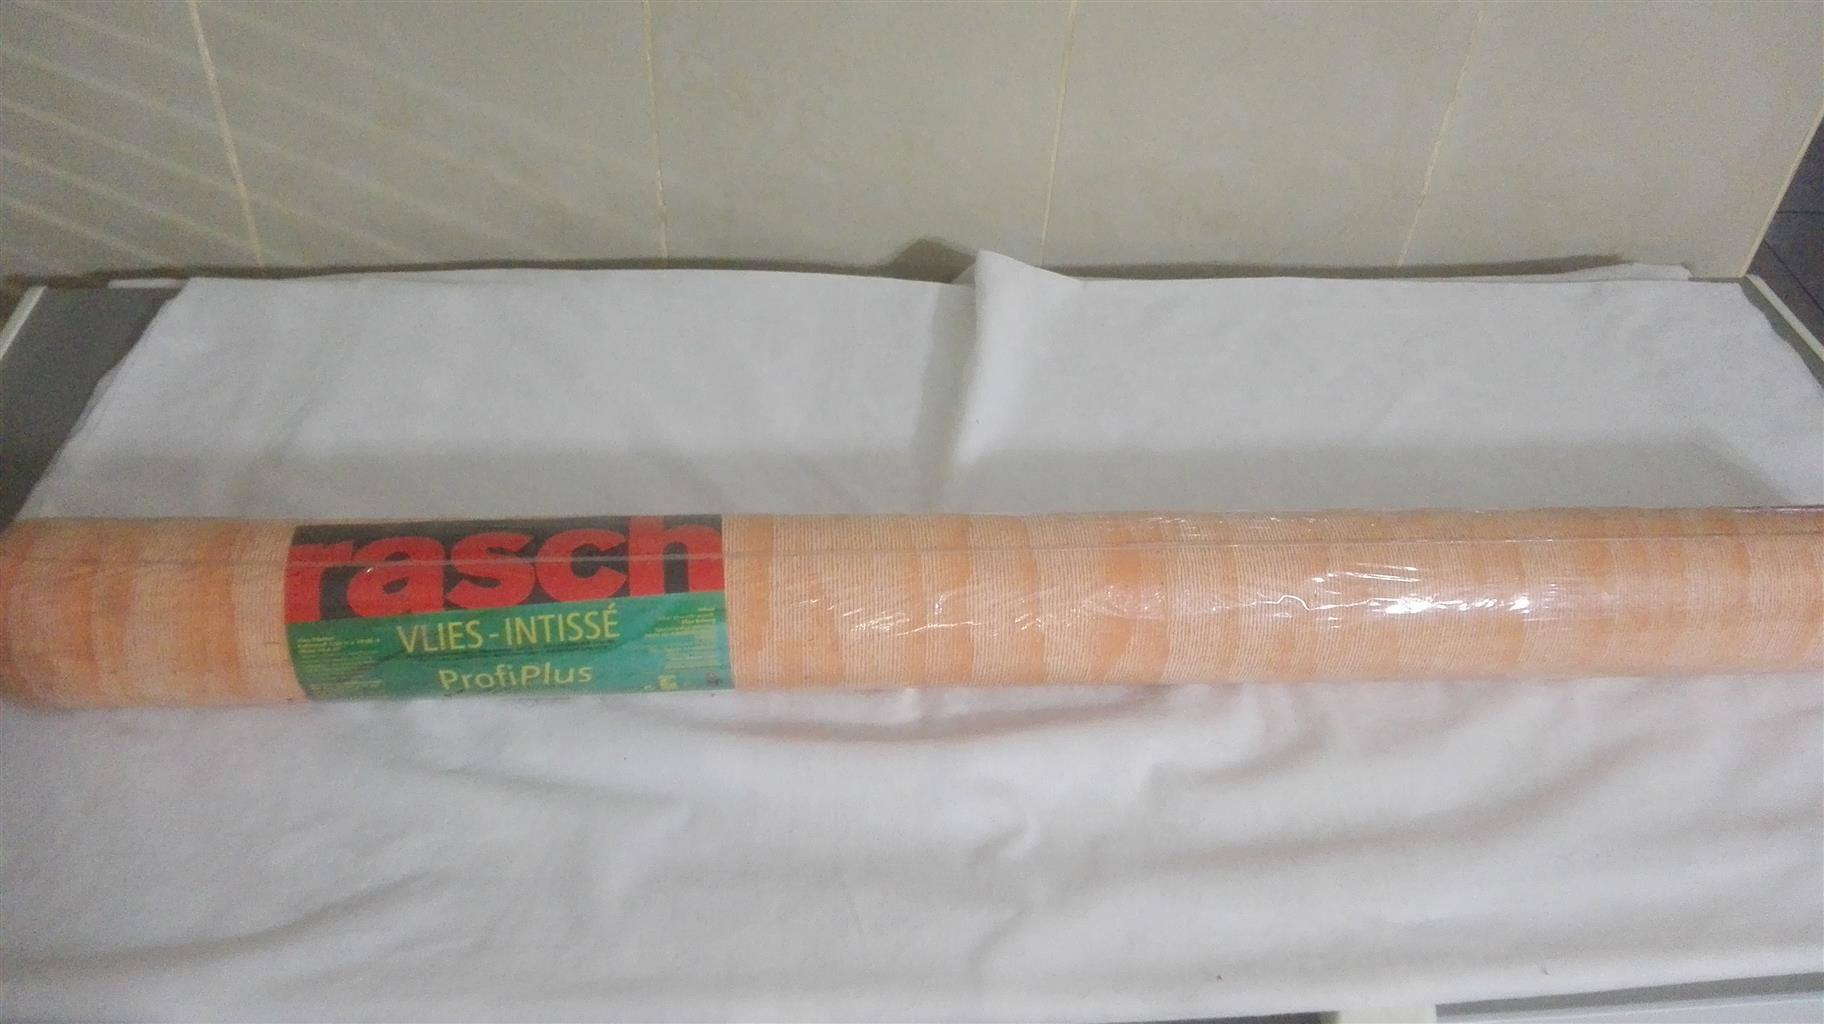 Double Bargain - Wallpapers from Germany R 99 per roll and Take 5 for 4